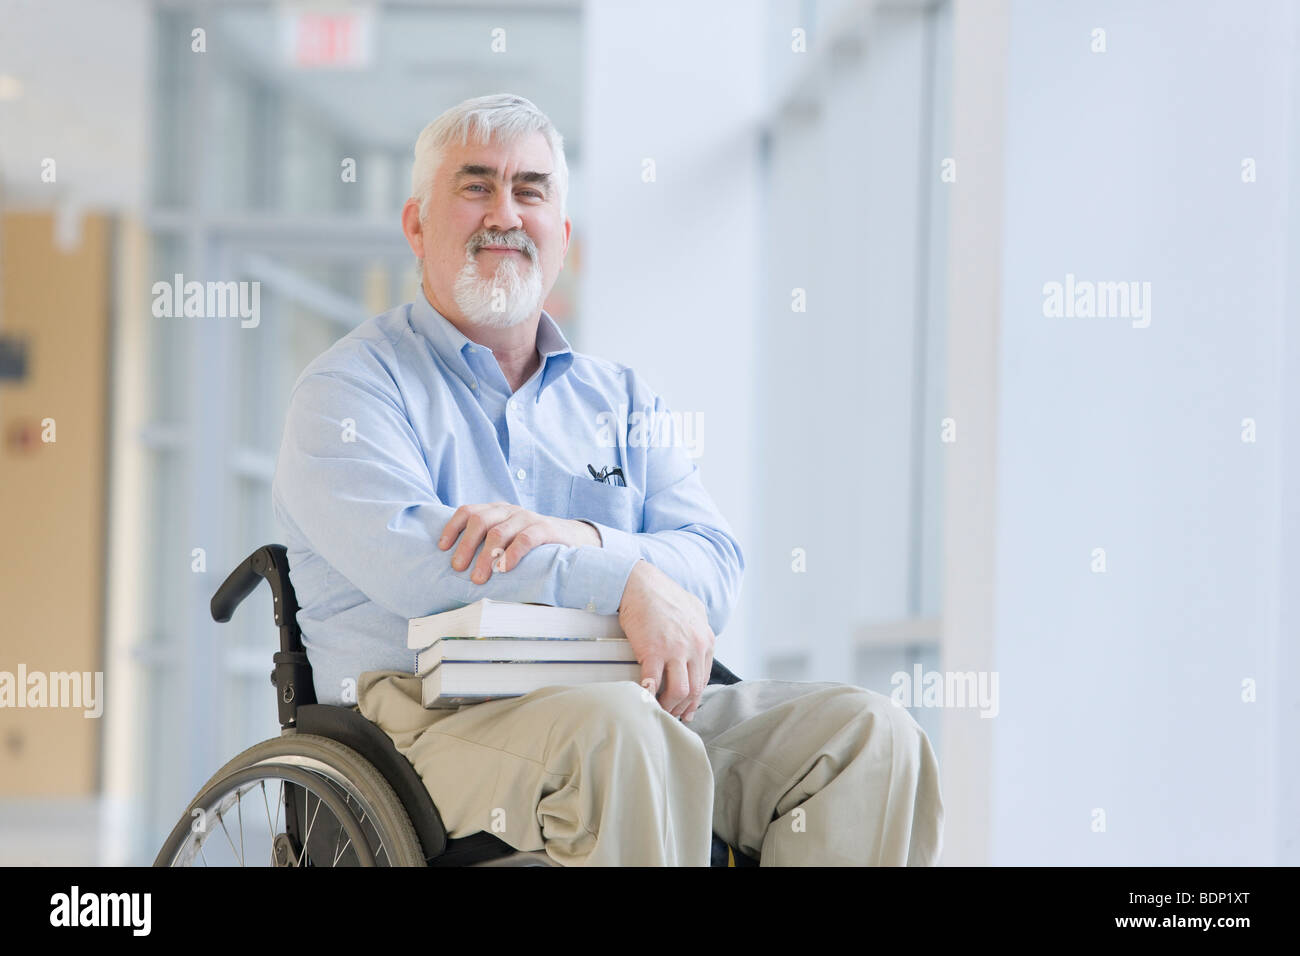 Portrait of a professor sitting in a wheelchair - Stock Image